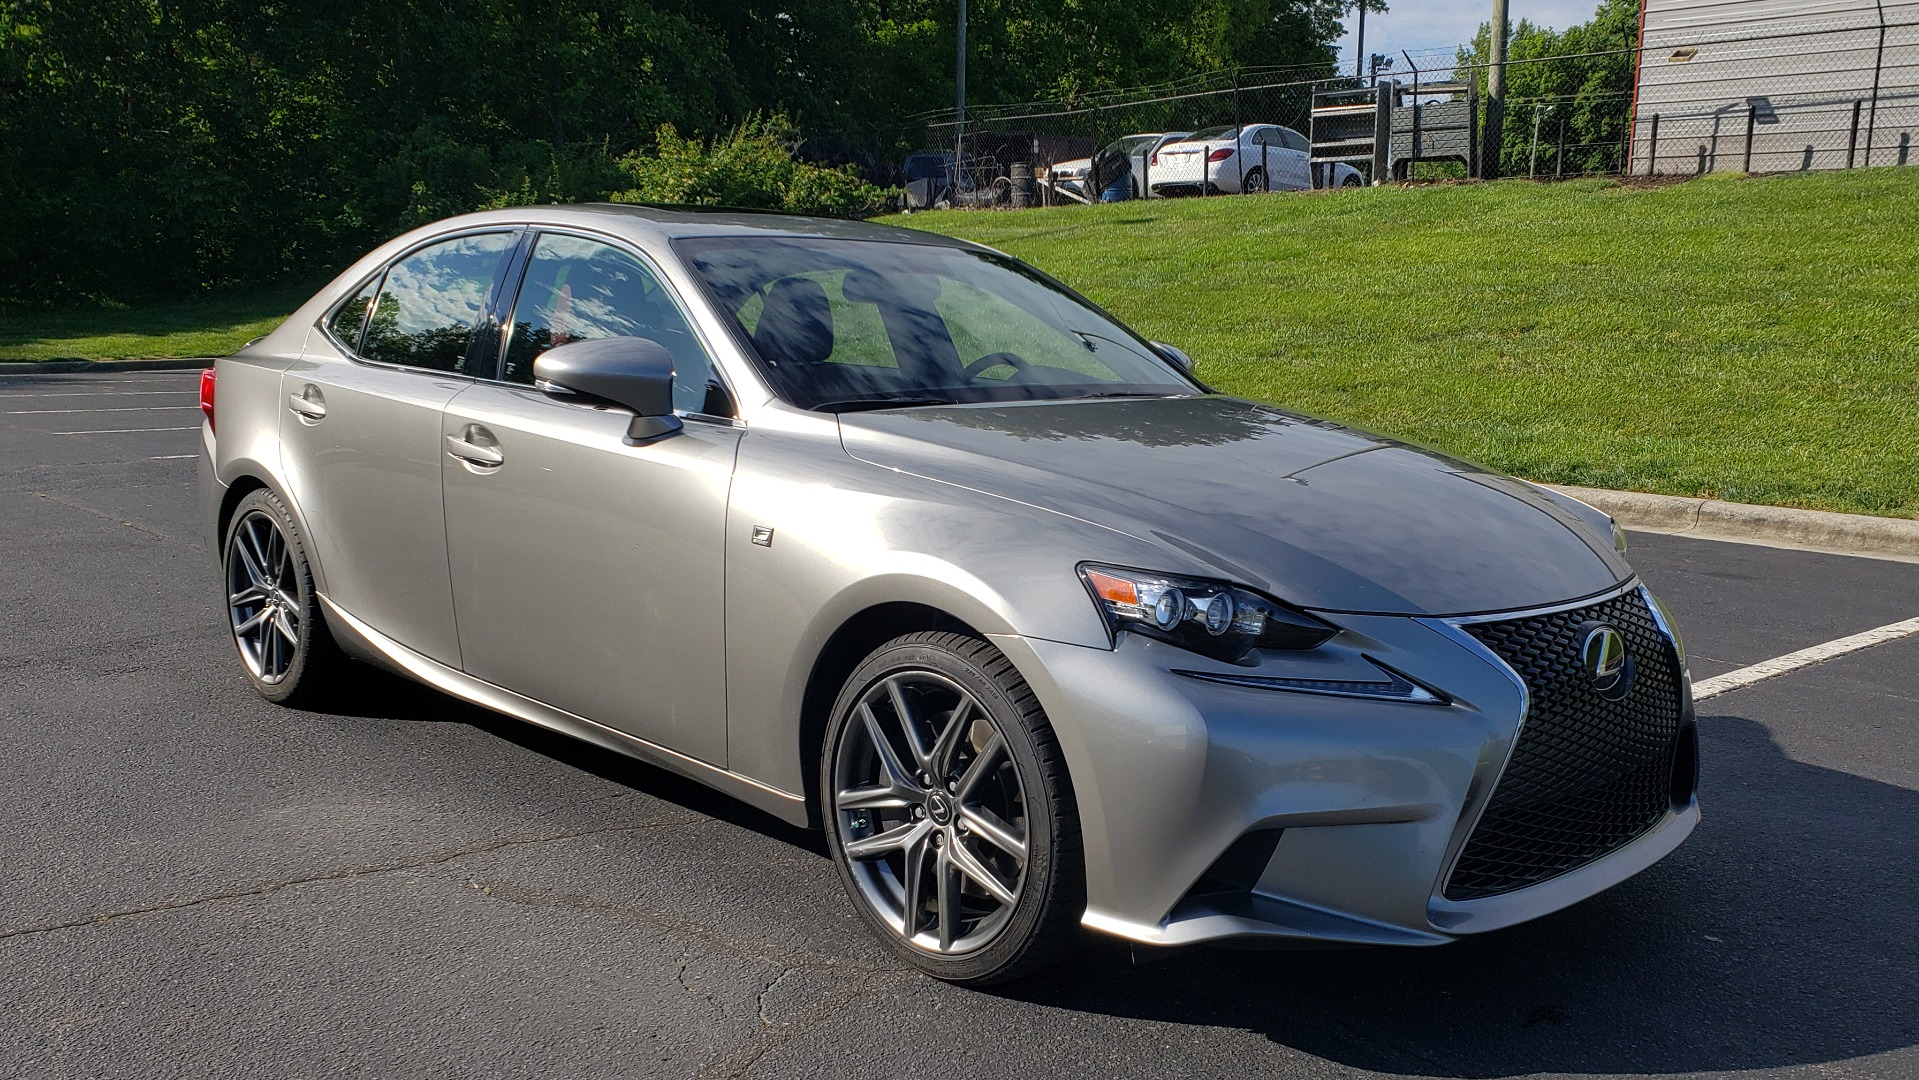 Used 2016 Lexus IS 300 F-SPORT / SUNROOF / BSM / VENTILATED SEATS / REARVIEW for sale Sold at Formula Imports in Charlotte NC 28227 4